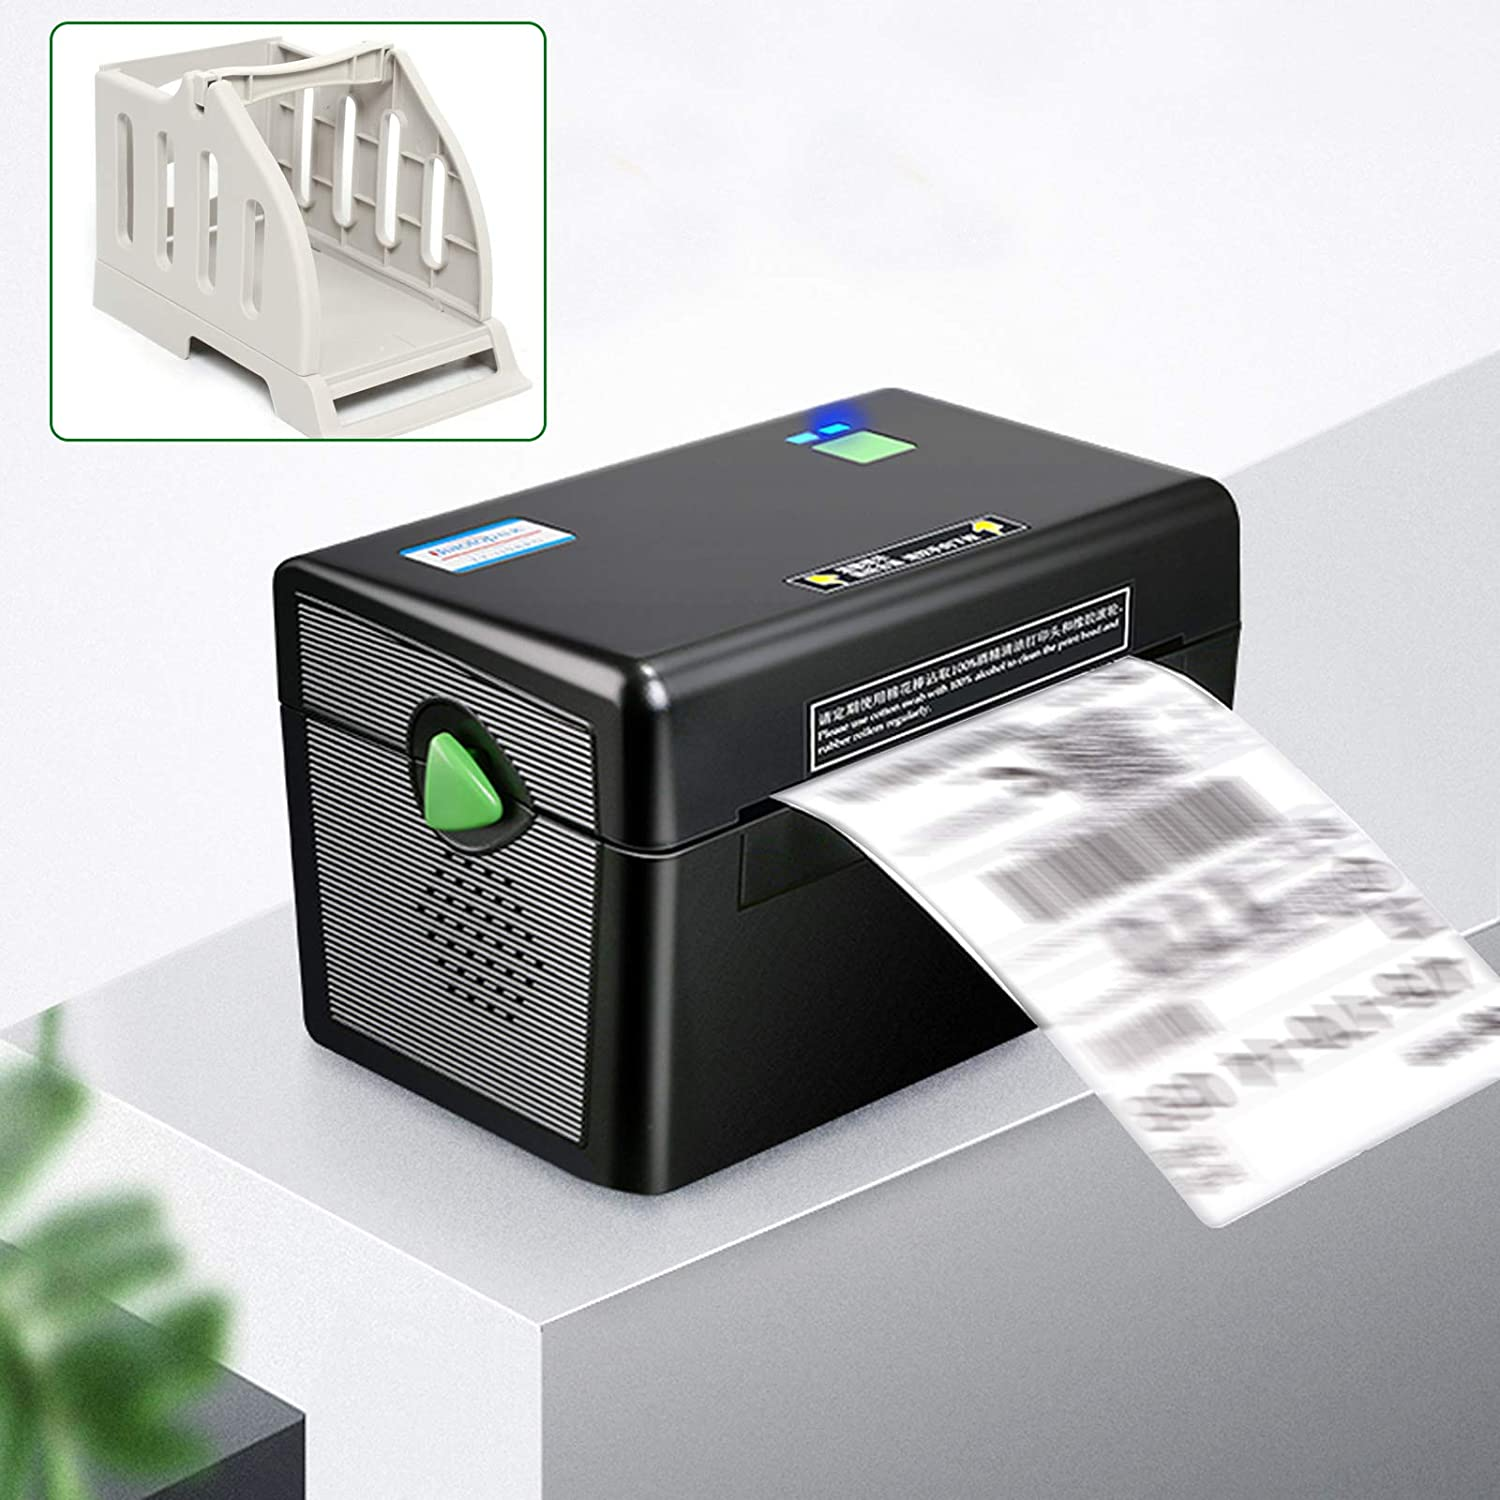 YIYIBYUS Label Printer Portable High Speed Thermal Label Barcode Electric Printer, Label, Filing, Transportation, Mailing, Barcode, Home and Office